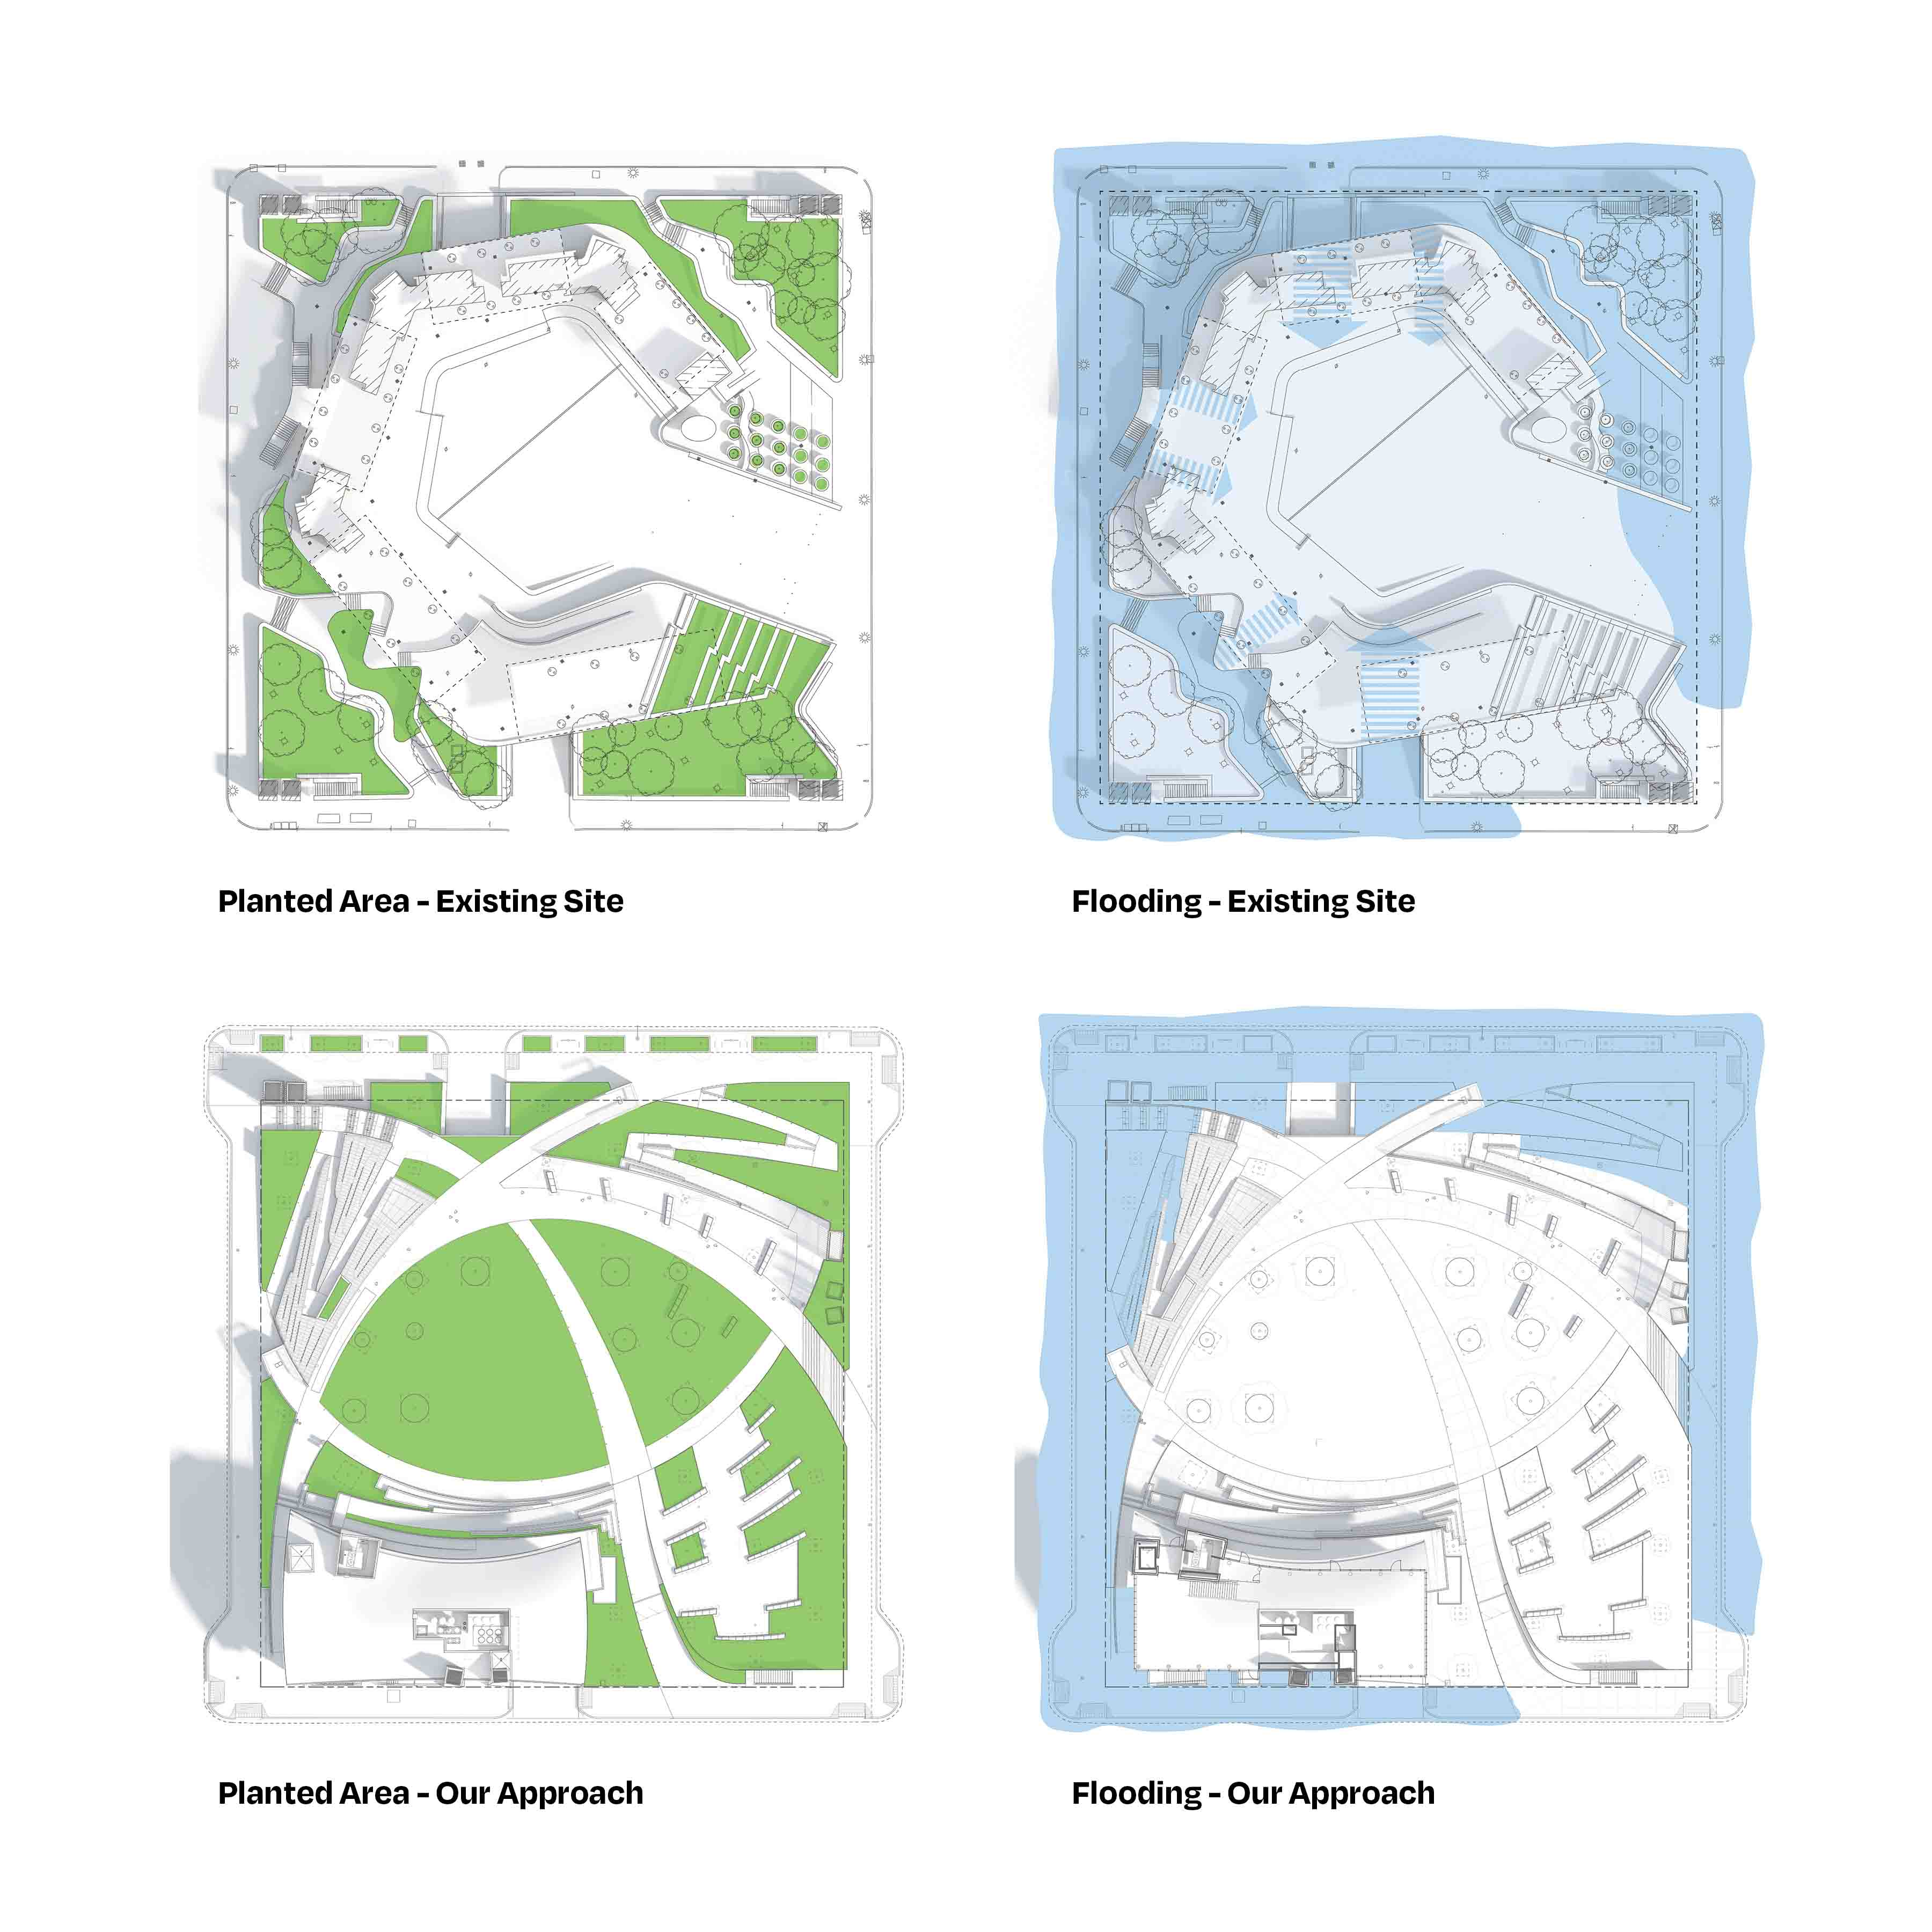 Site diagram of Houston's Wyatt square detonating the before and after areas of plantings and flooding.